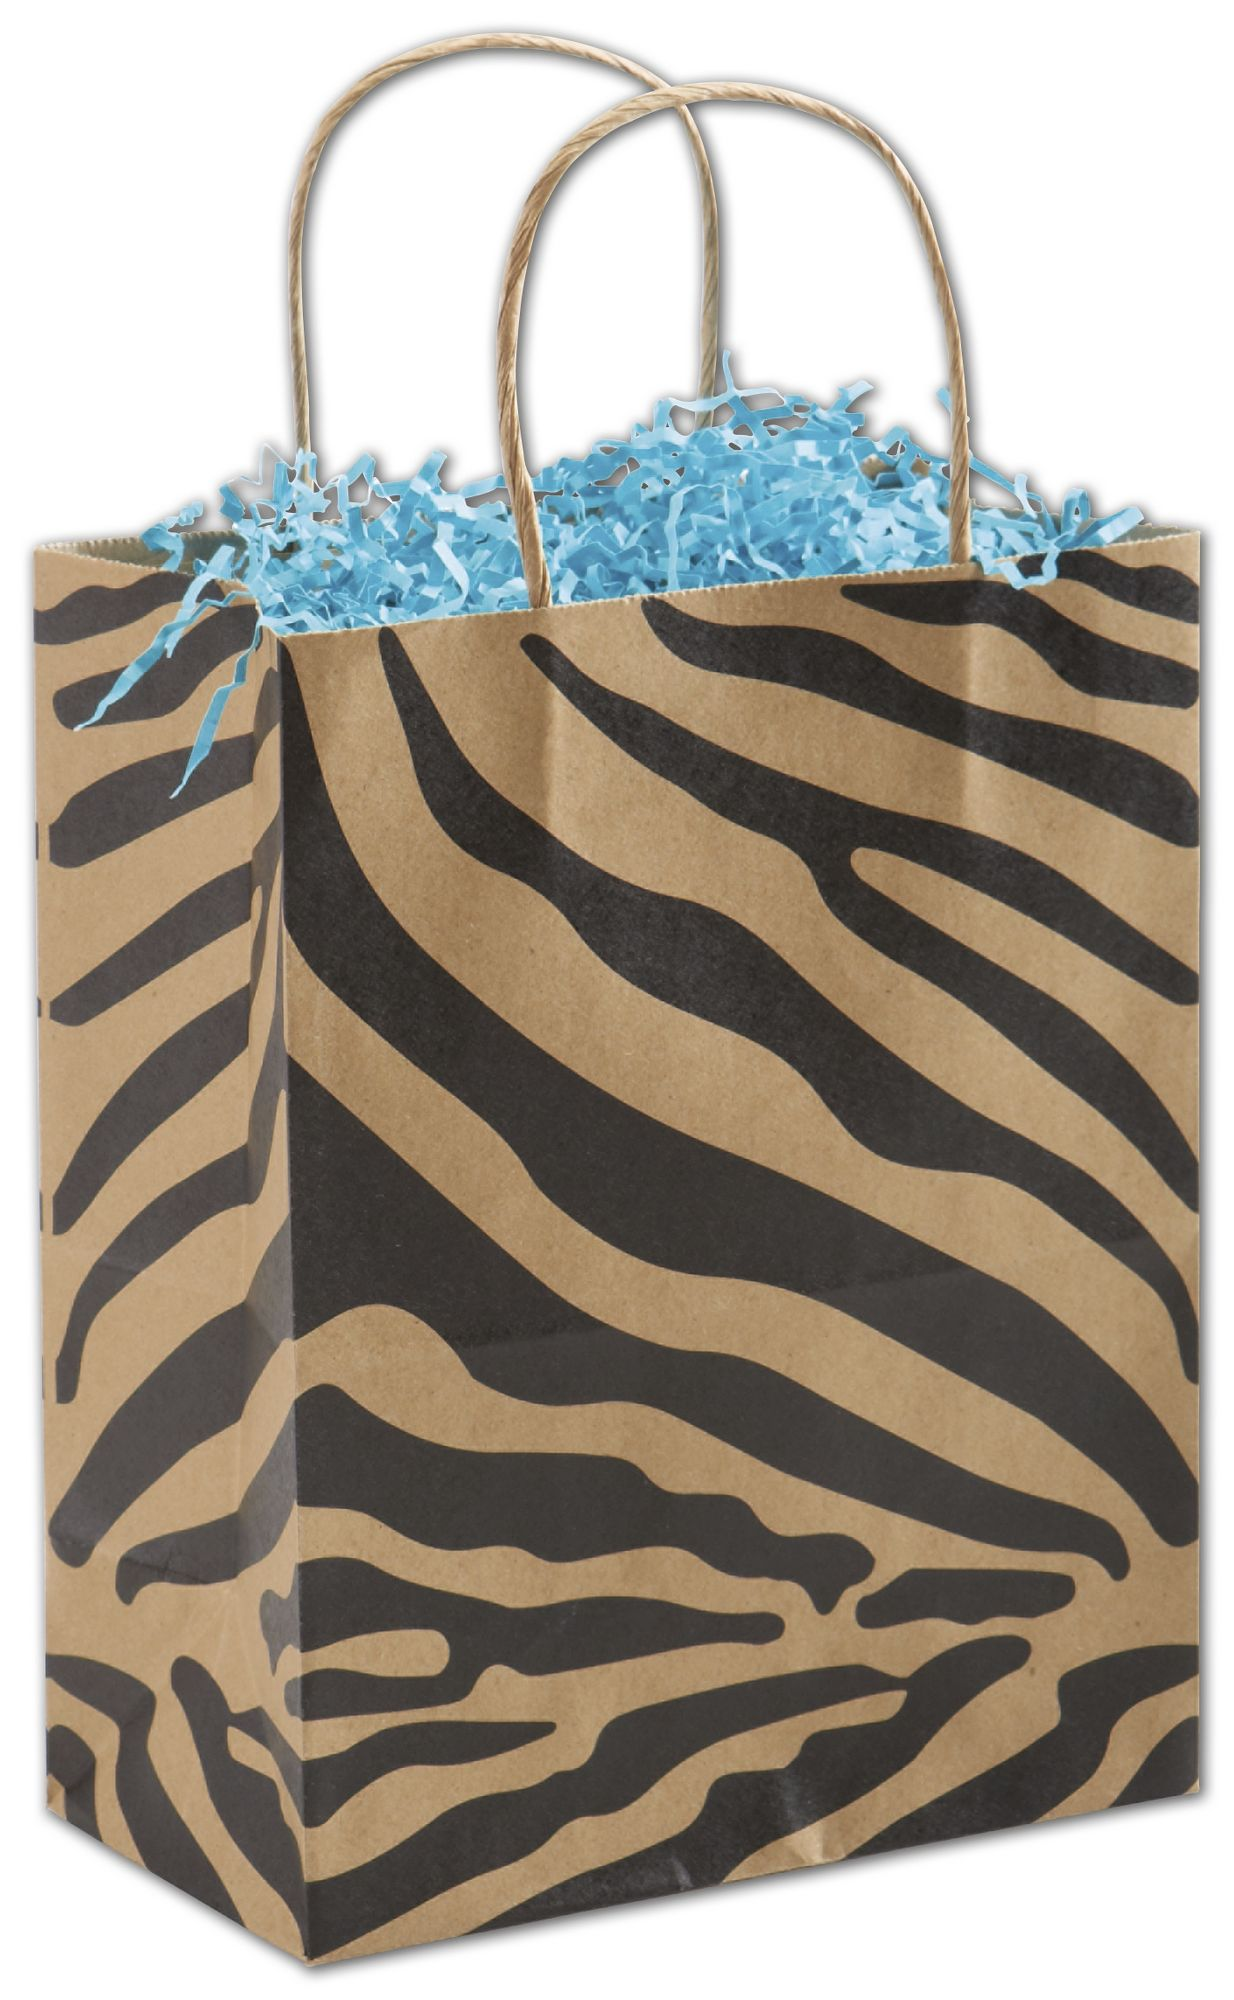 These sturdy kraft bags with a bold black zebra print package your purchases or gifts stylishly.